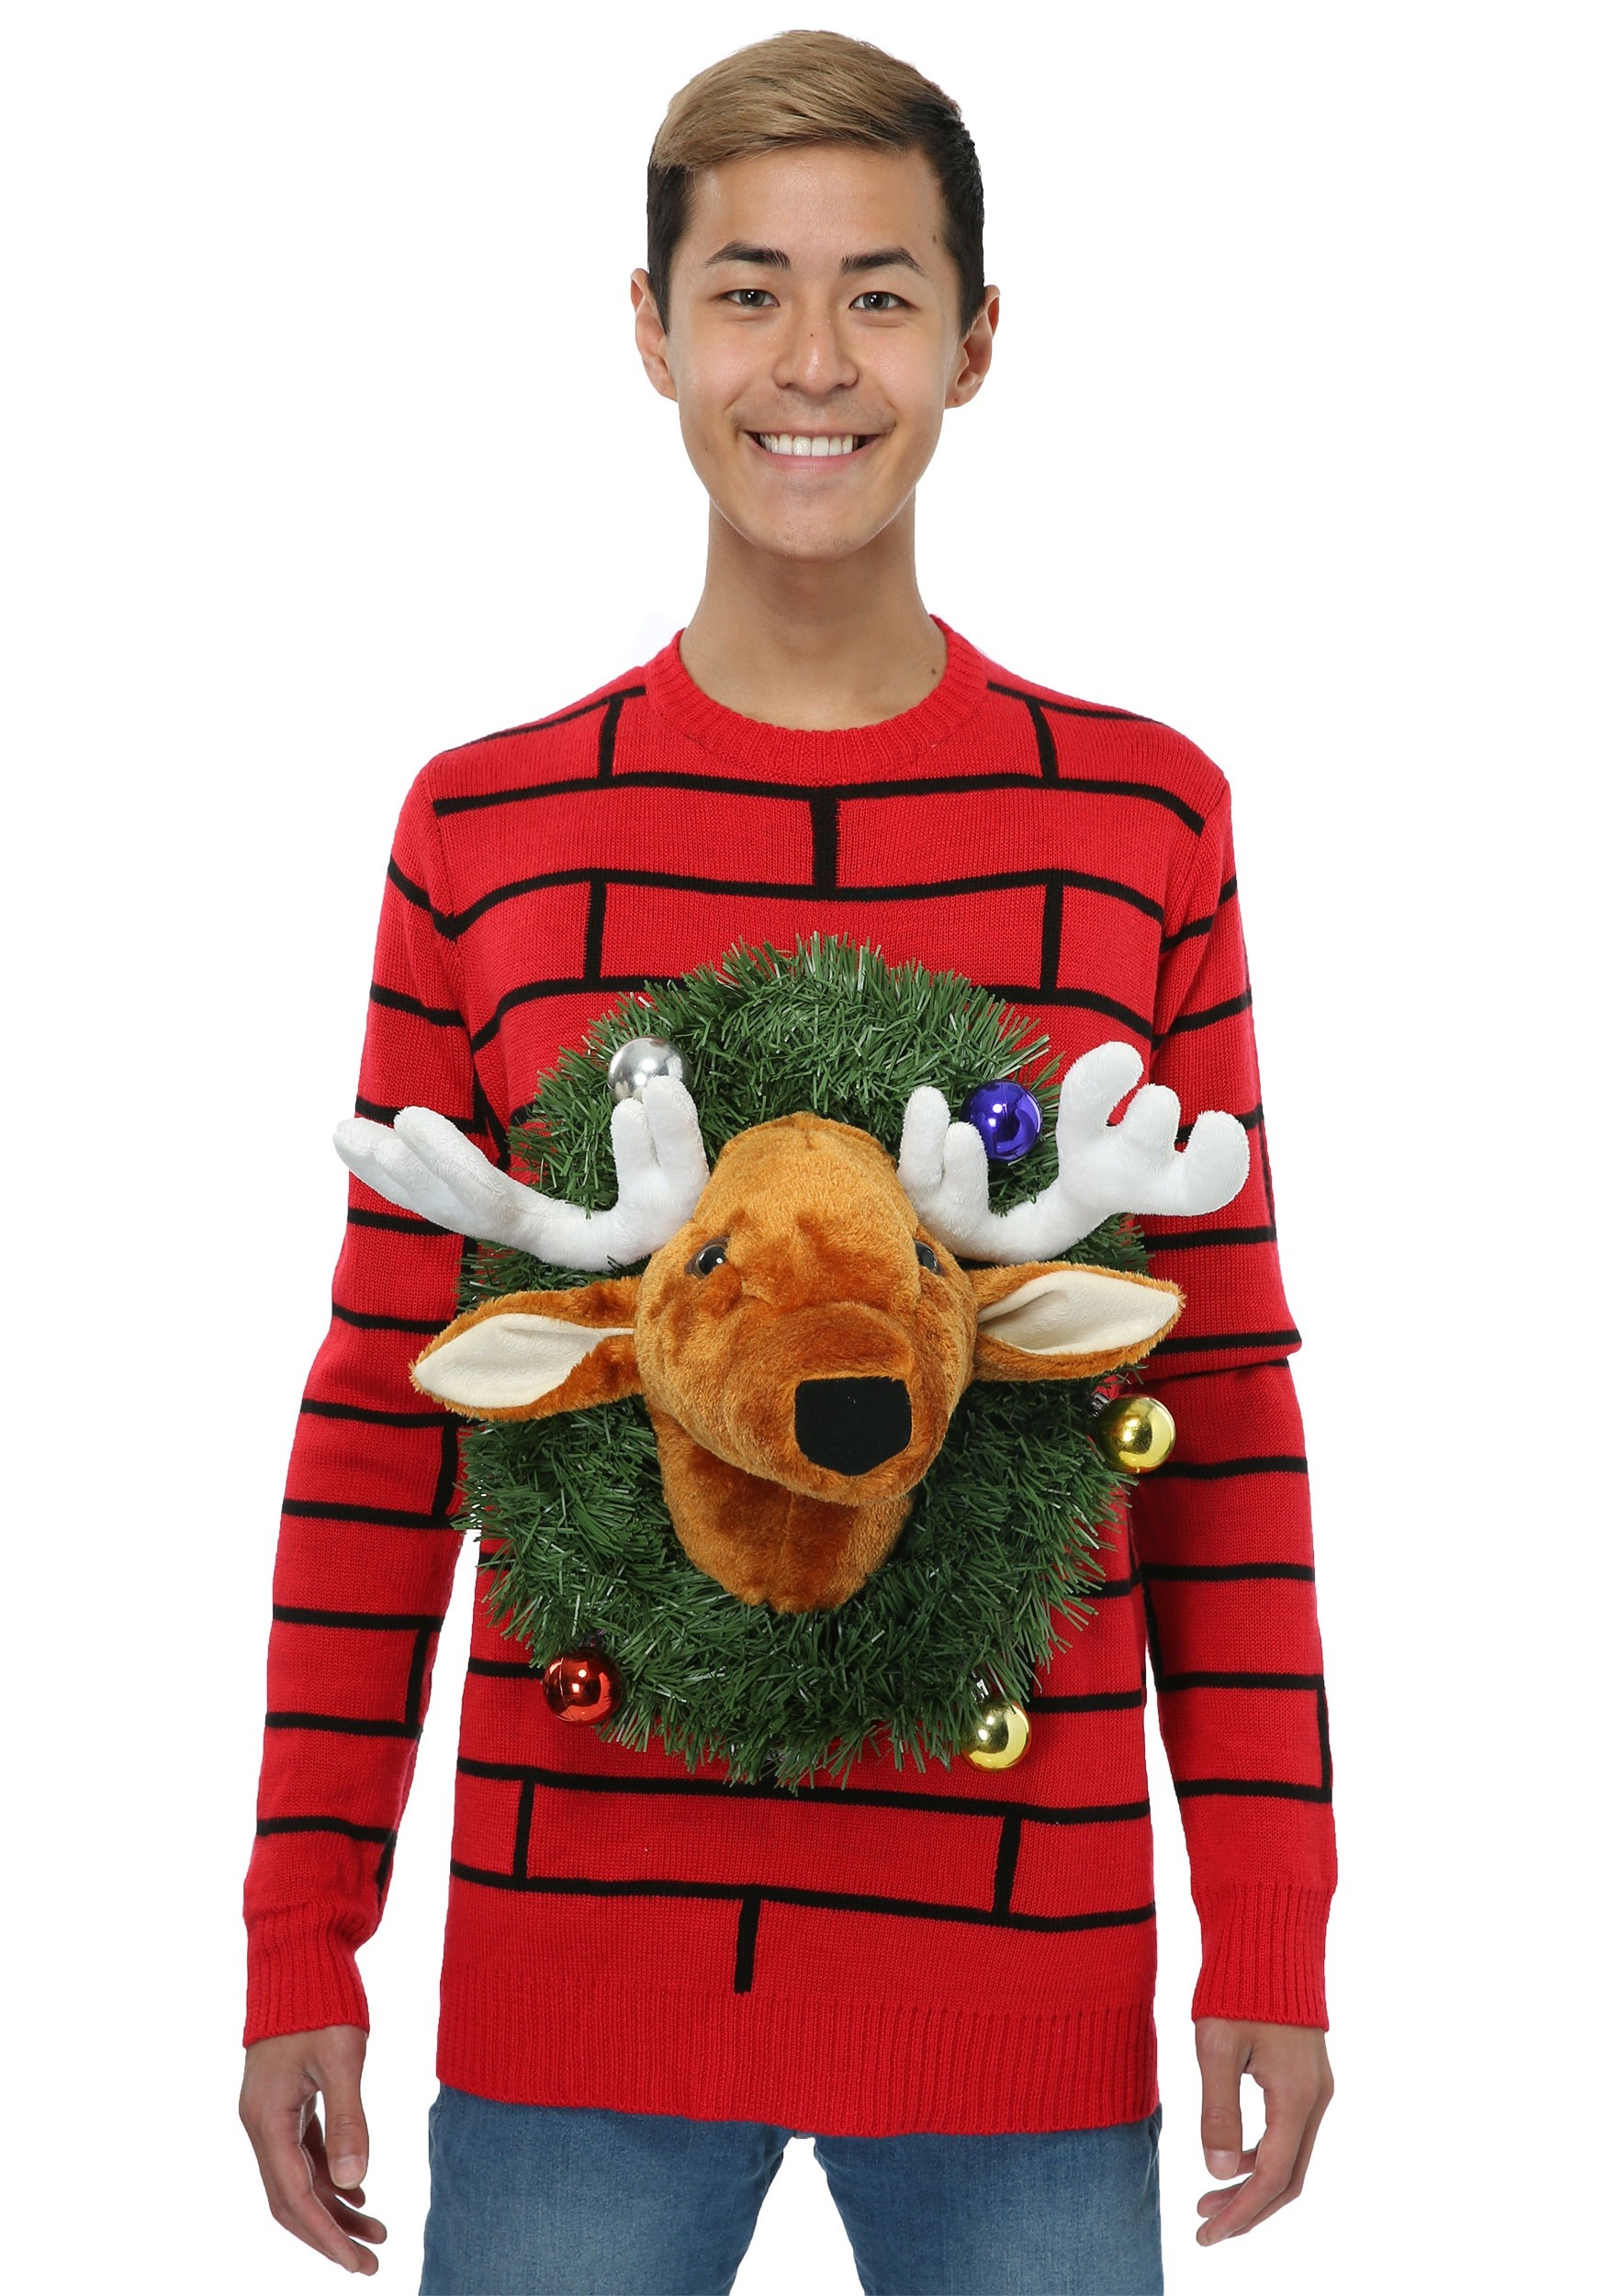 Reindeer Head Ugly Christmas Sweater for Adults